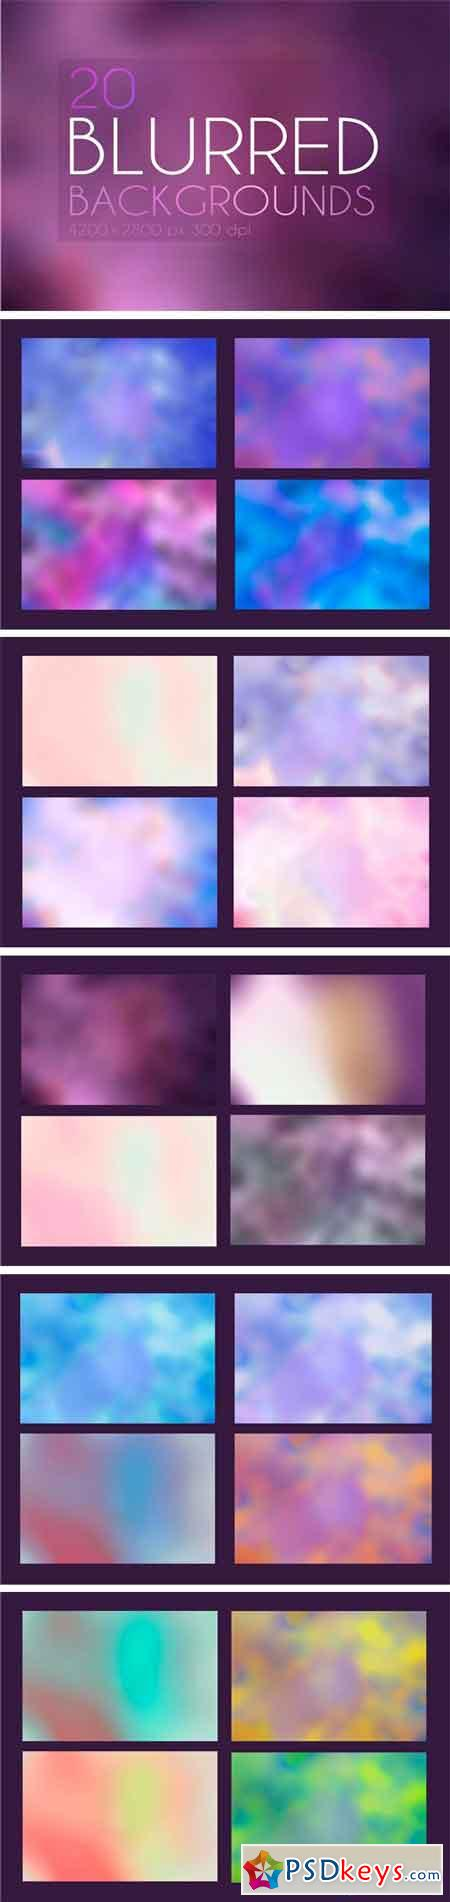 Blurred Backgrounds 2510879